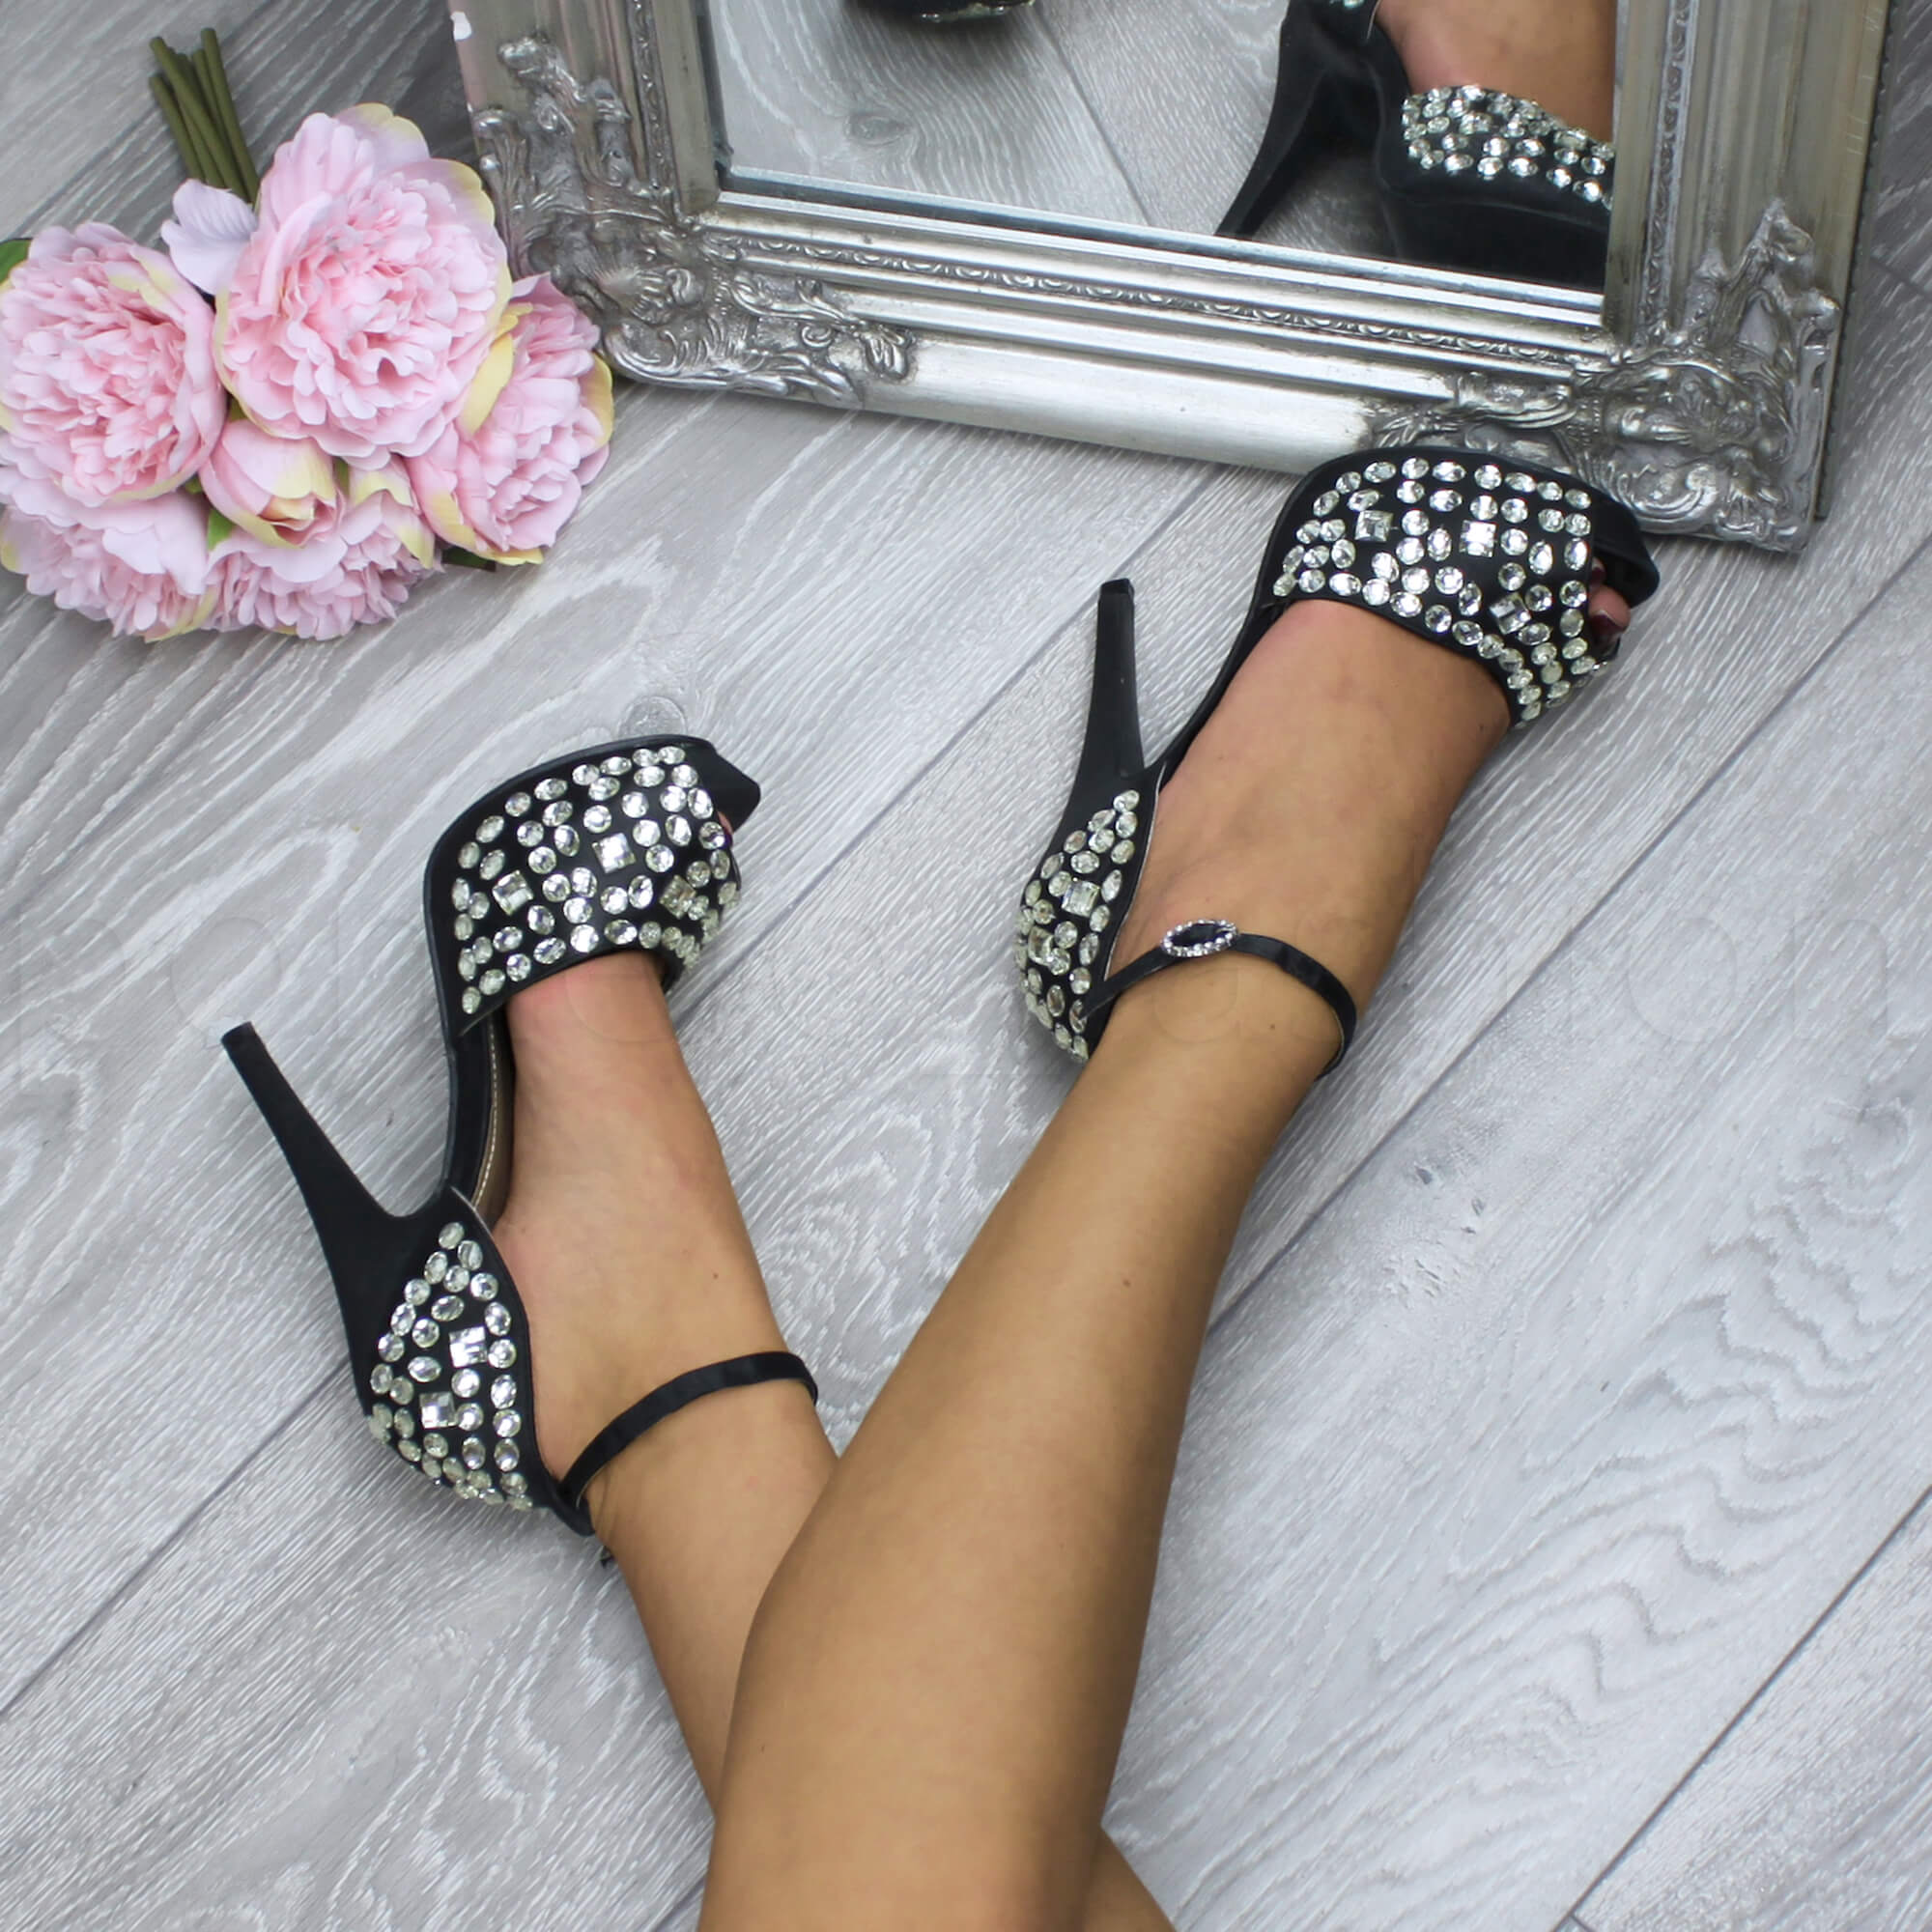 WOMENS-LADIES-HIGH-HEEL-PLATFORM-PEEPTOE-GEM-ANKLE-STRAP-SANDALS-SHOES-SIZE